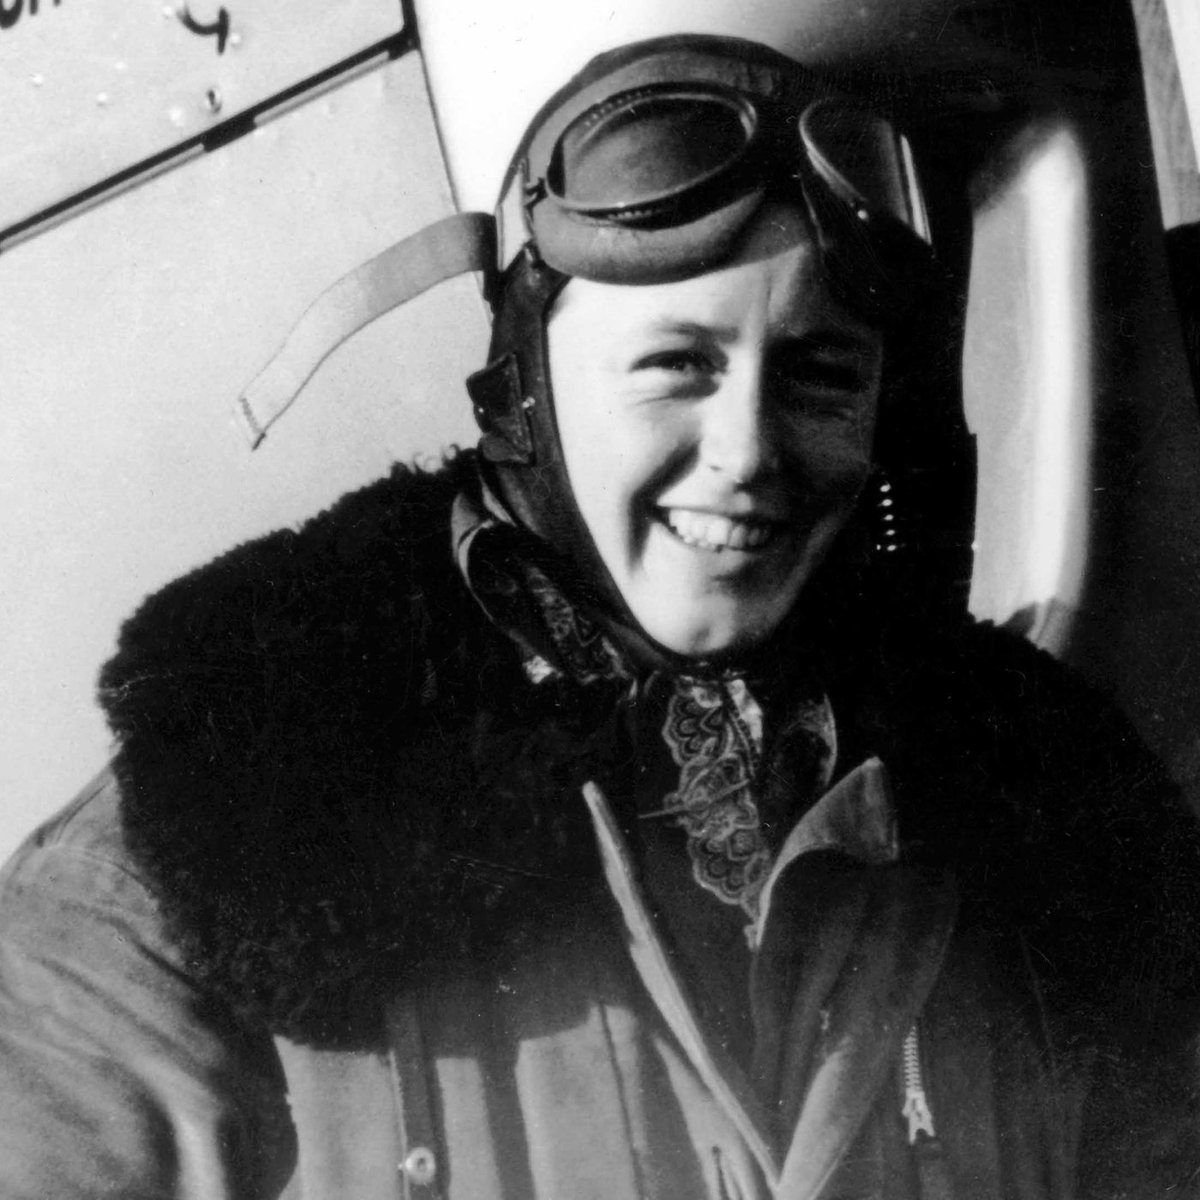 Meet Luftwaffe pilot Beate Uhse - she stole a plane, flew into Berlin late April 1945, rescued her infant son, his nanny & 2 injured soldiers - stole another plane & dodged flak & fighters to escape to the West - then went on to found Germany's biggest chain of sex-shops. https://t.co/f0zE1cNzDa